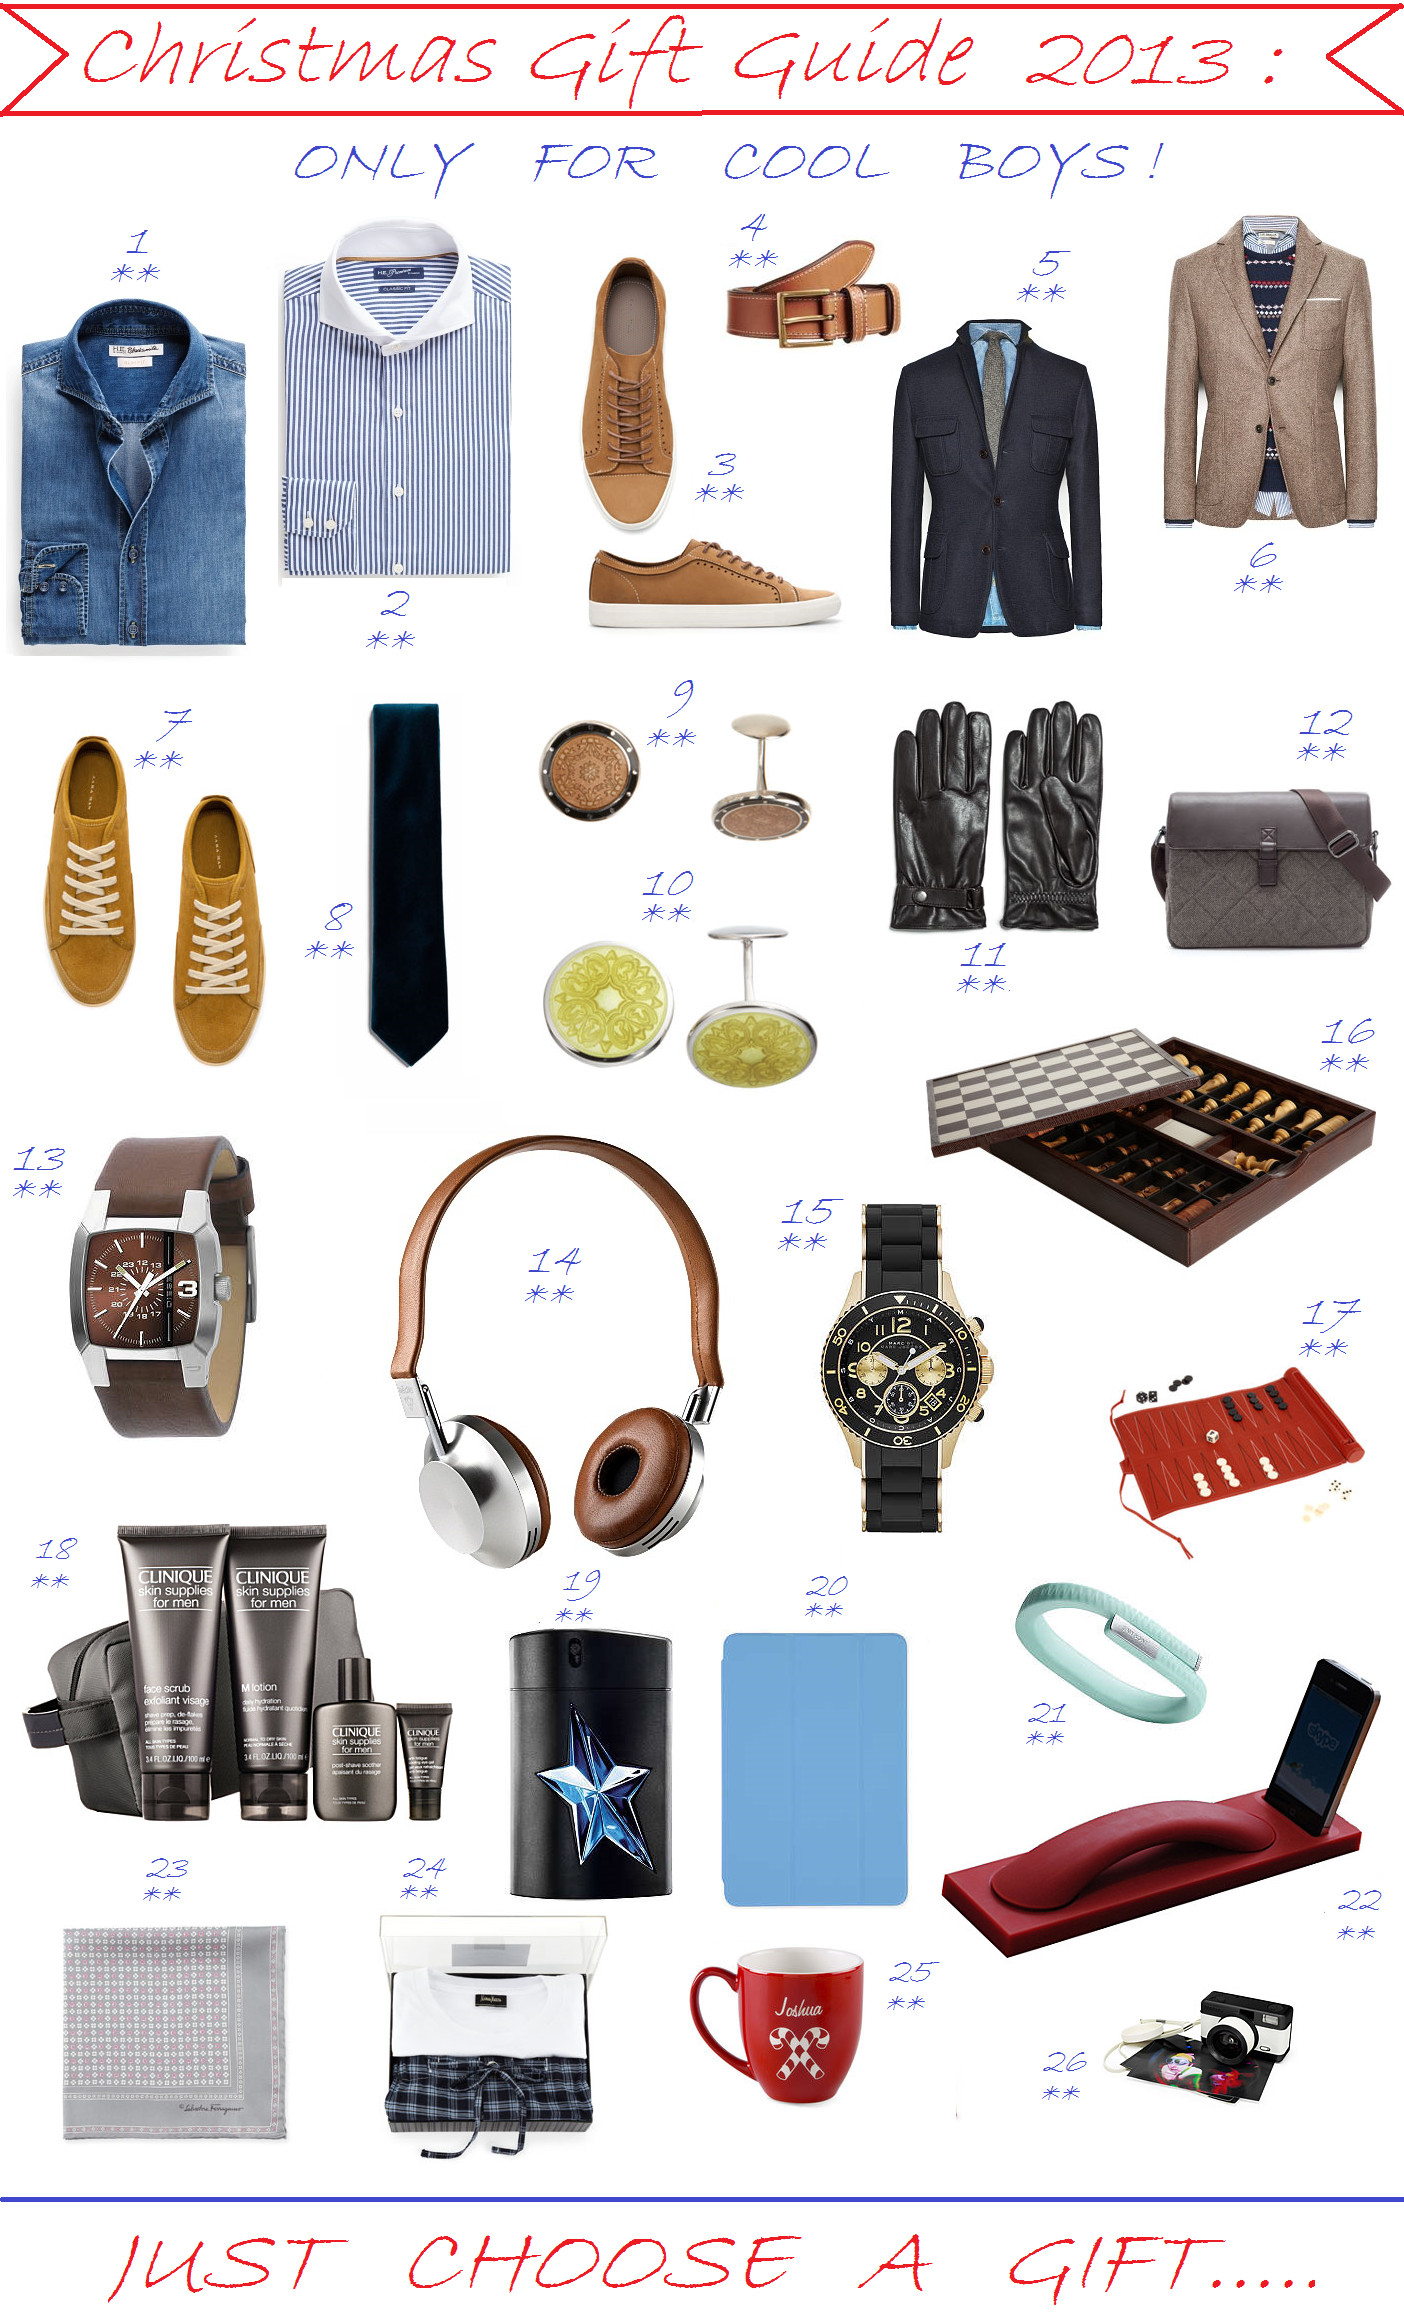 Small Gift Ideas For Boys  CHRISTMAS GIFT GUIDE 2013 ONLY FOR COOL BOYS